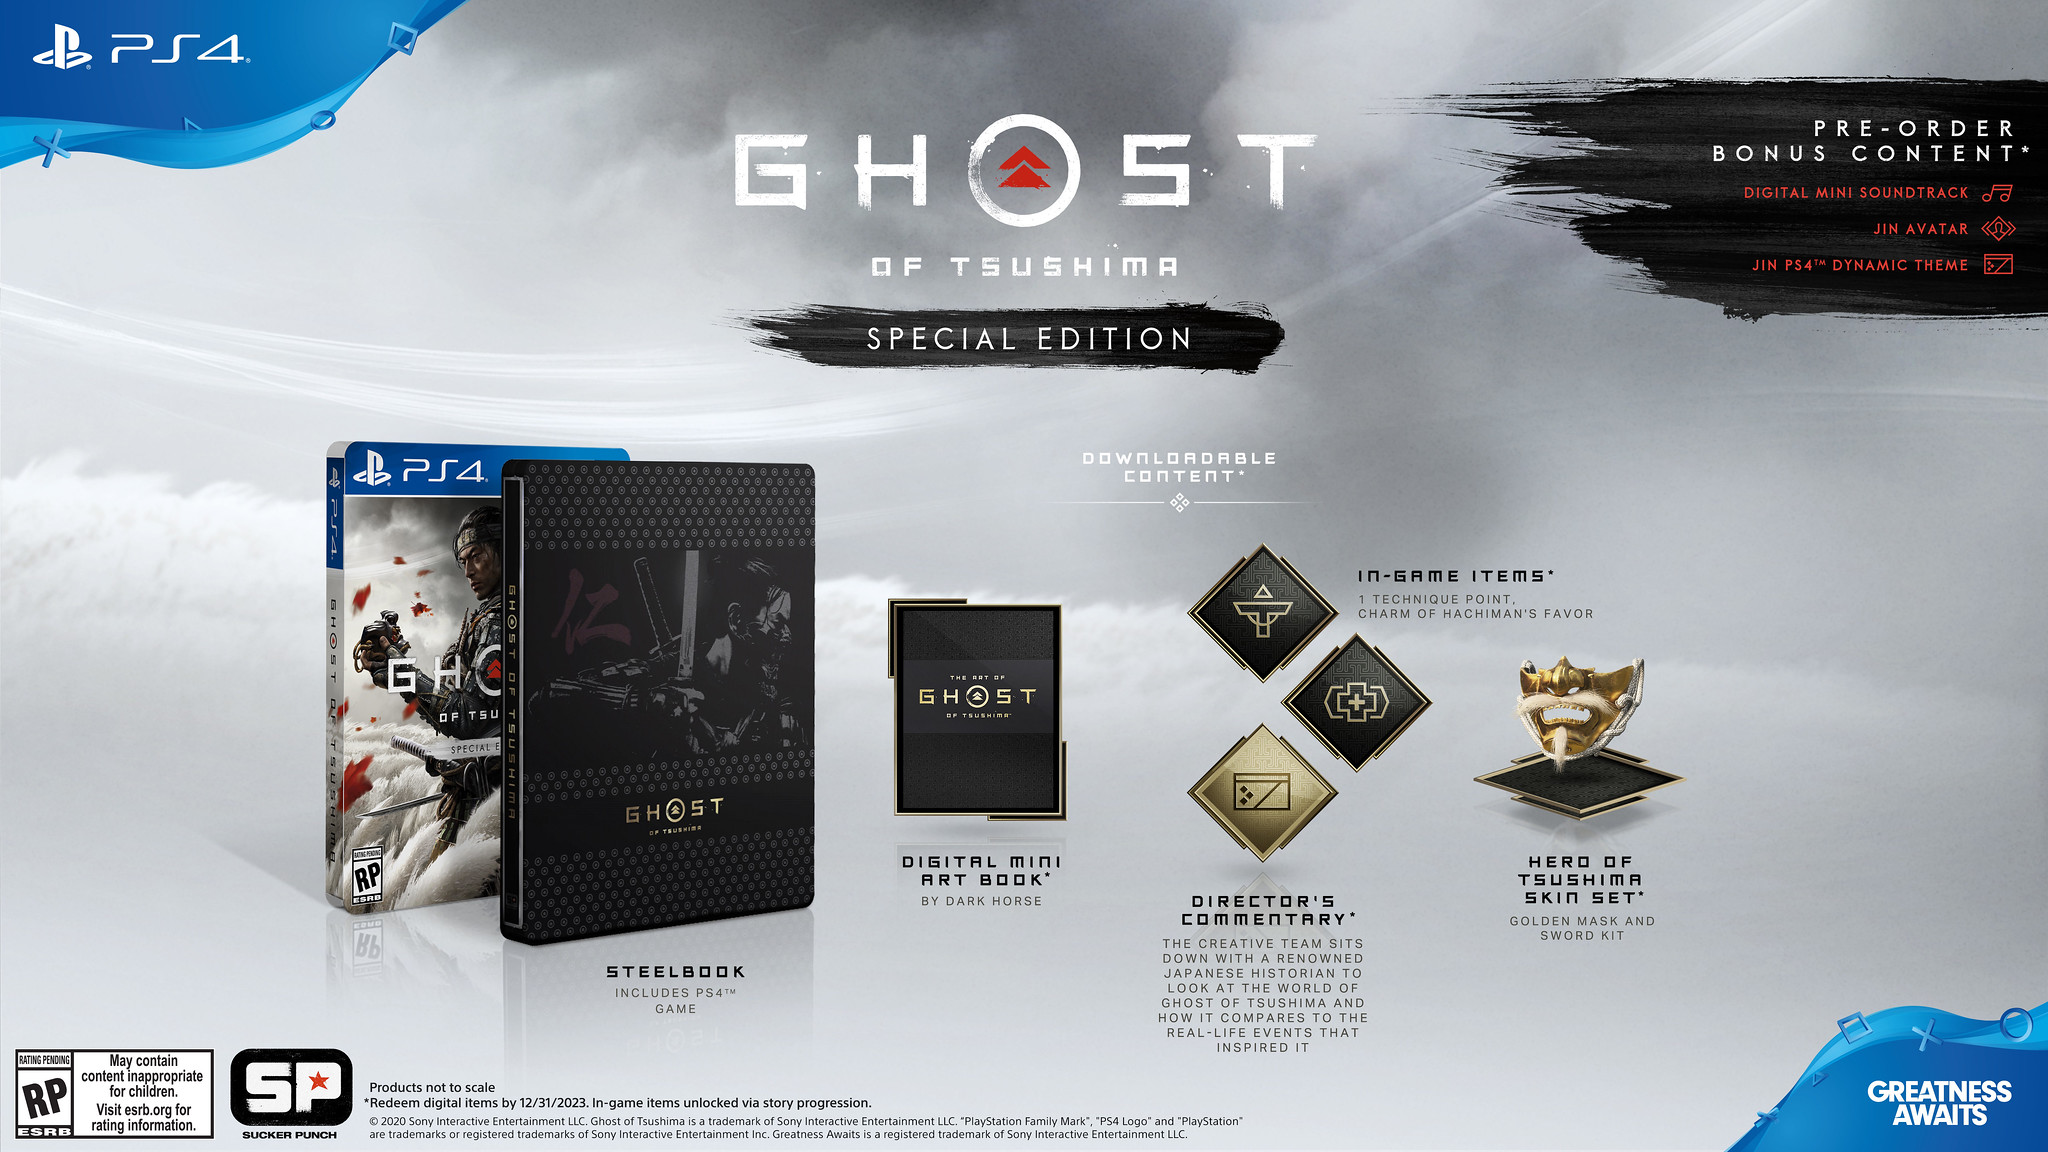 Special Edition Ghost of Tsushima